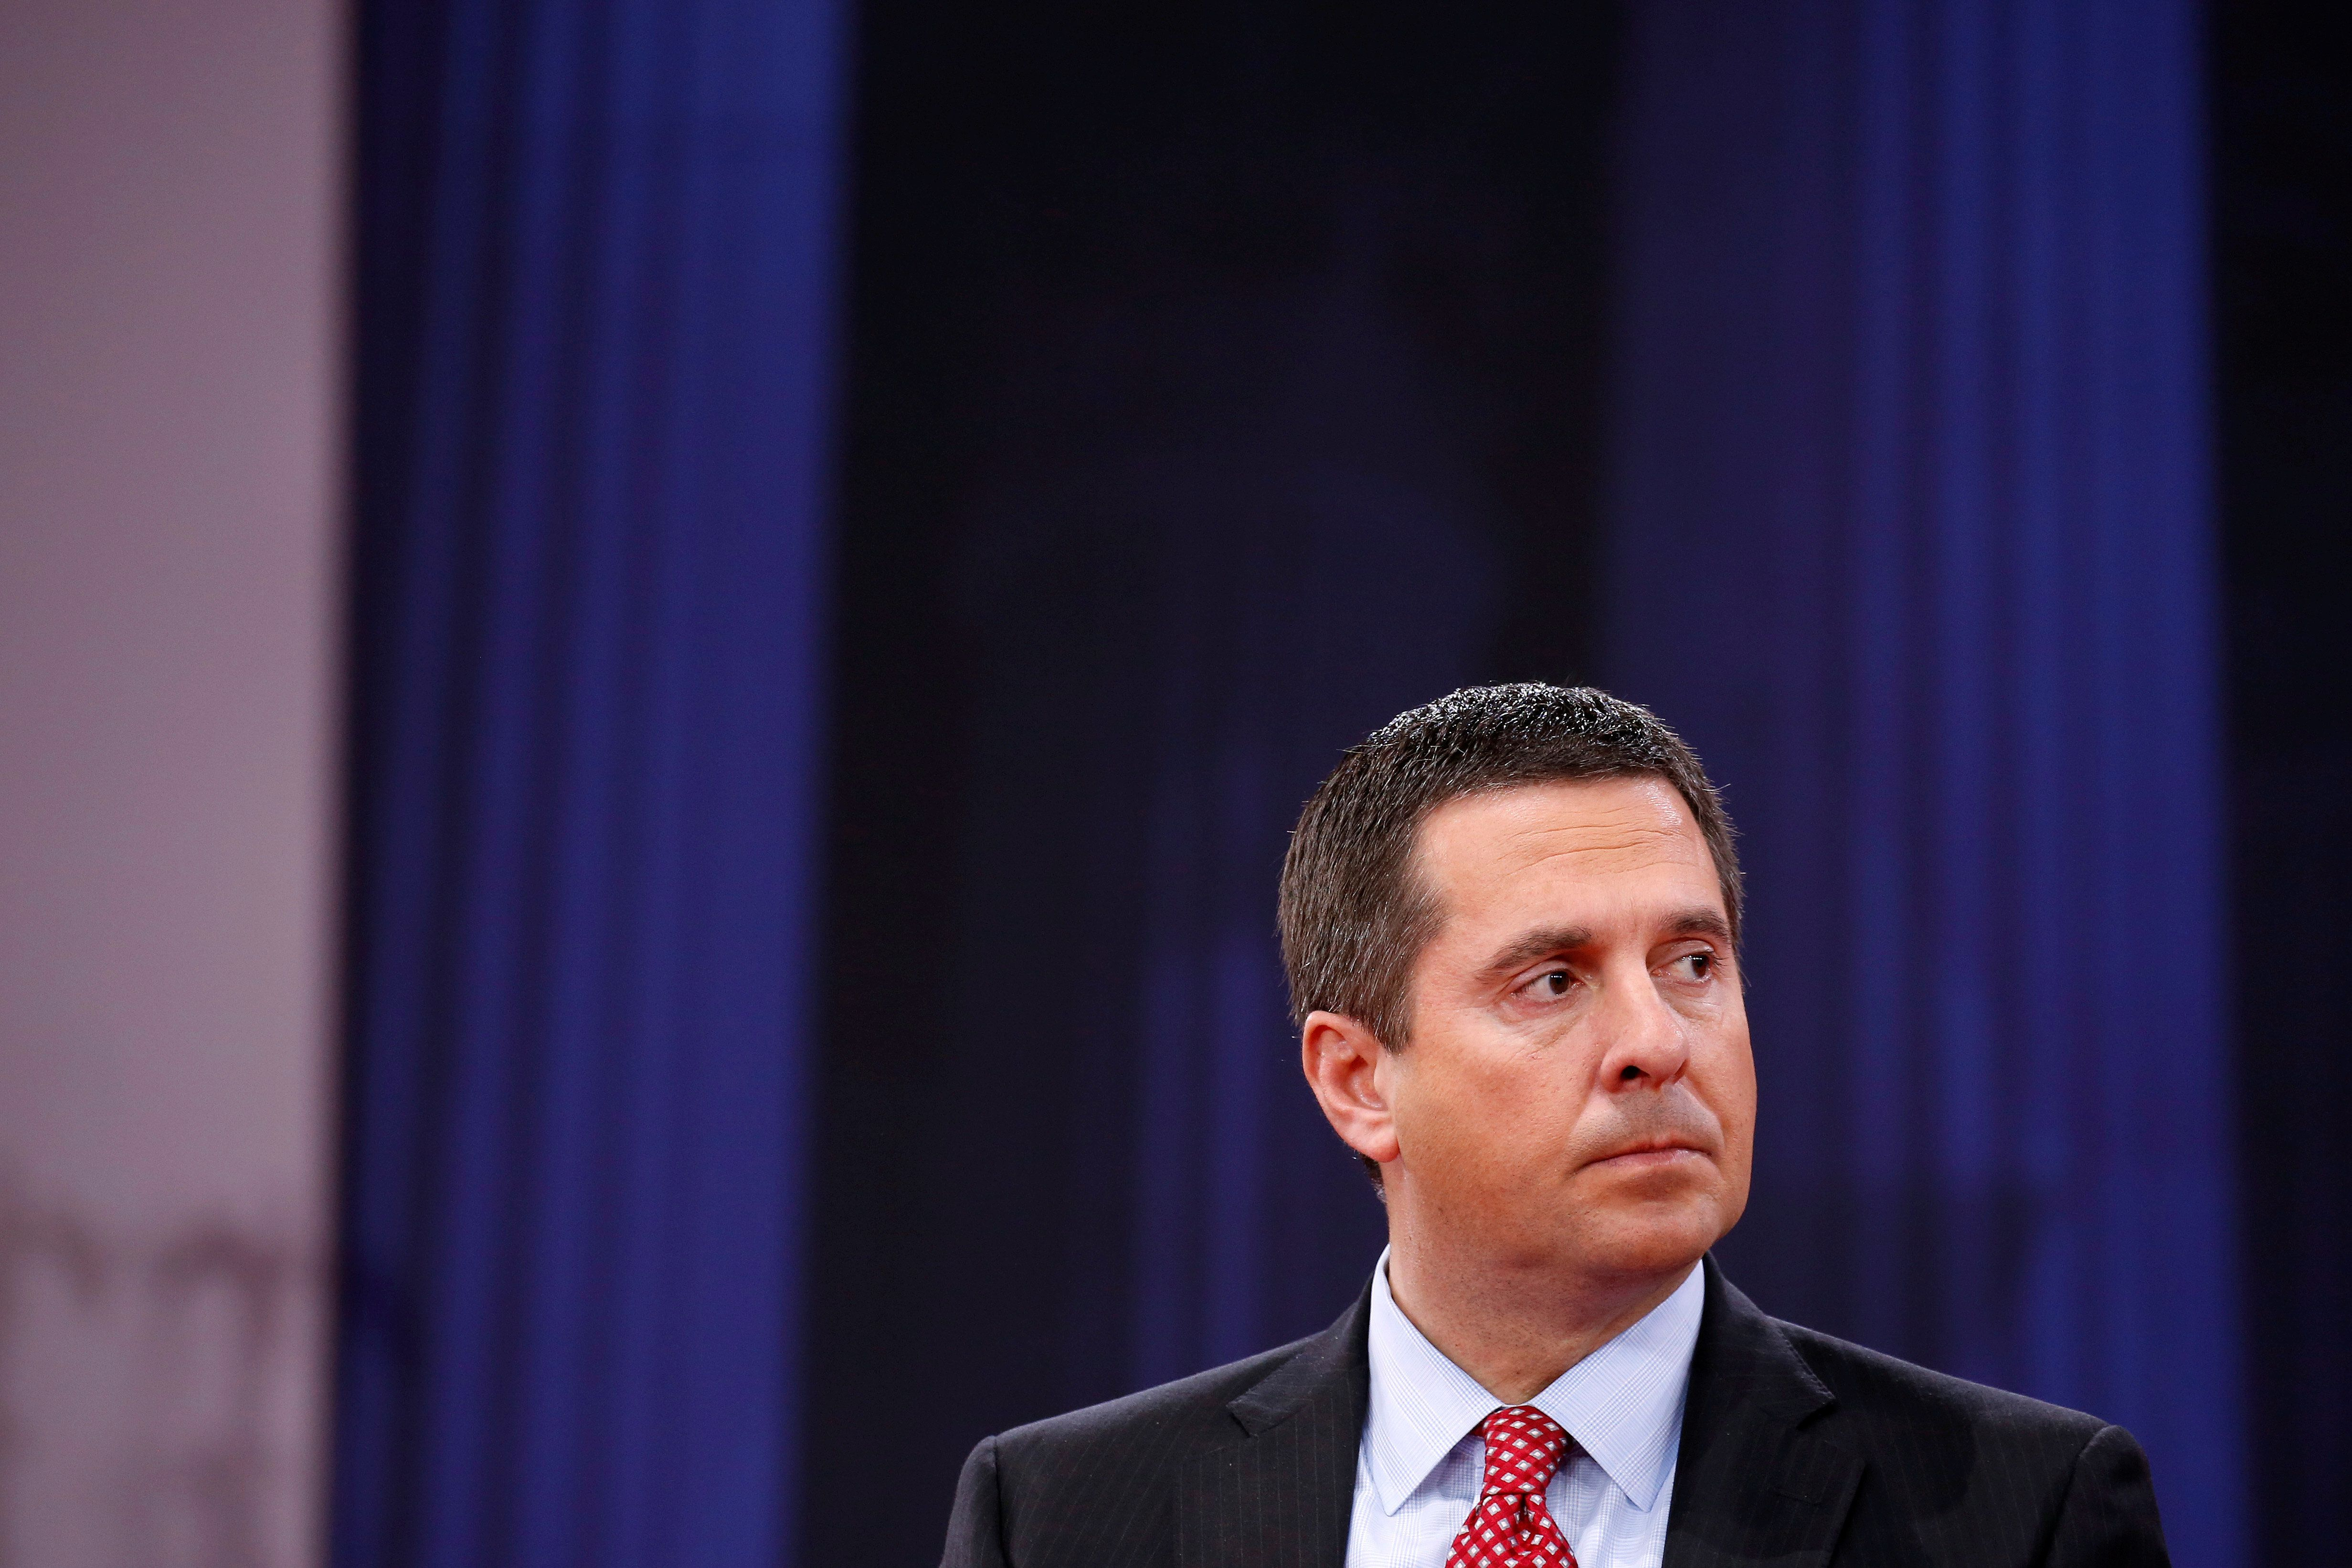 Devin Nunes Talks About Protecting Trump on Leaked Audio